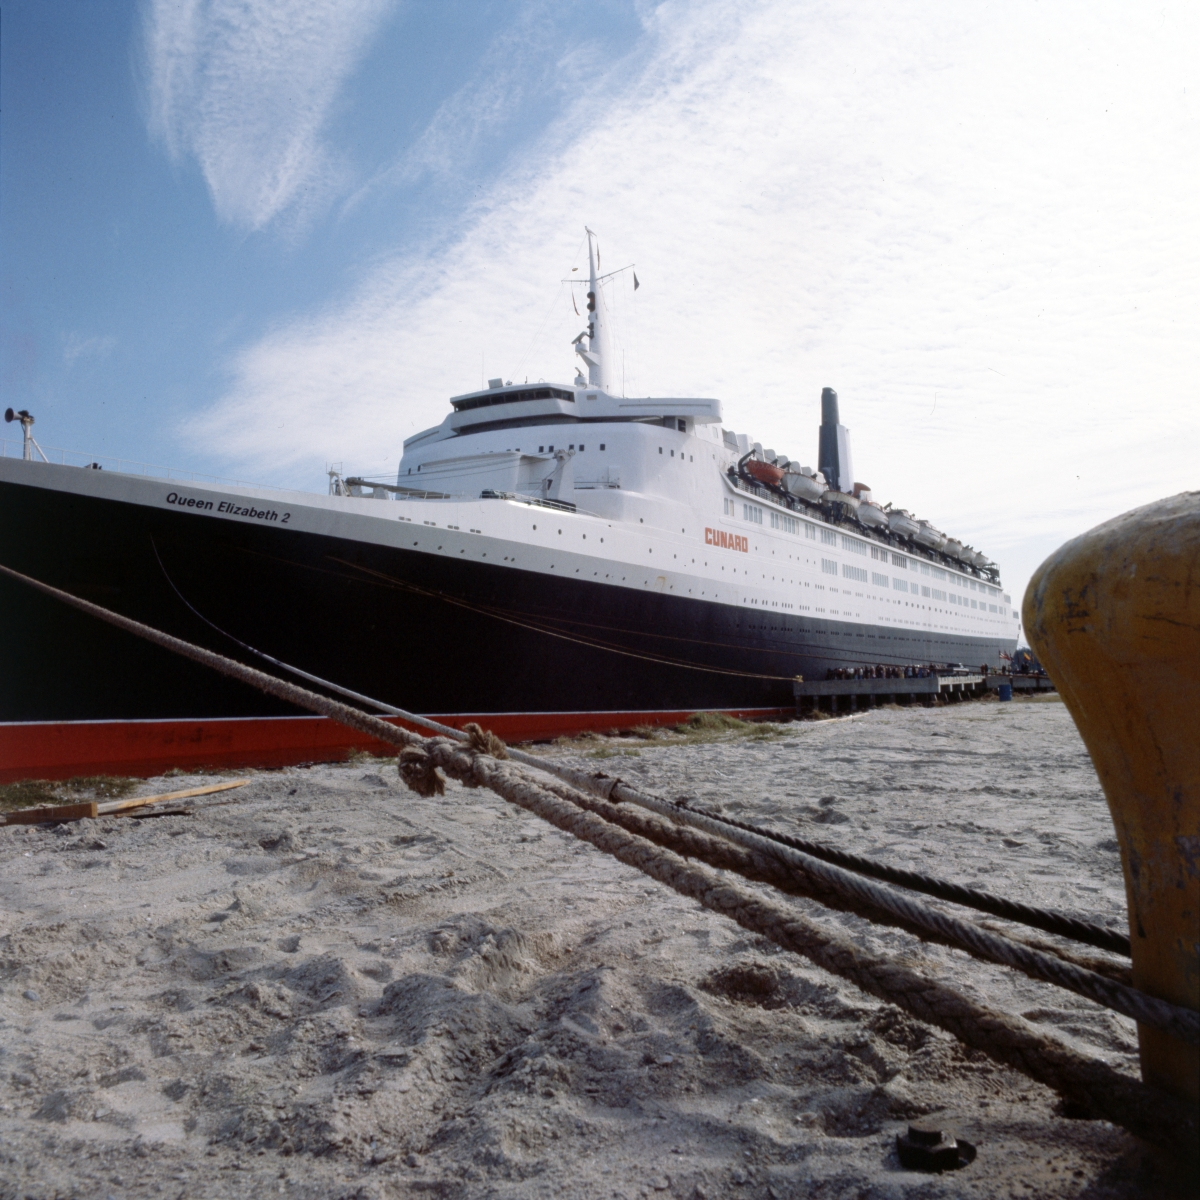 Close-up view of the Queen Elizabeth 2 moored at Port Canaveral.